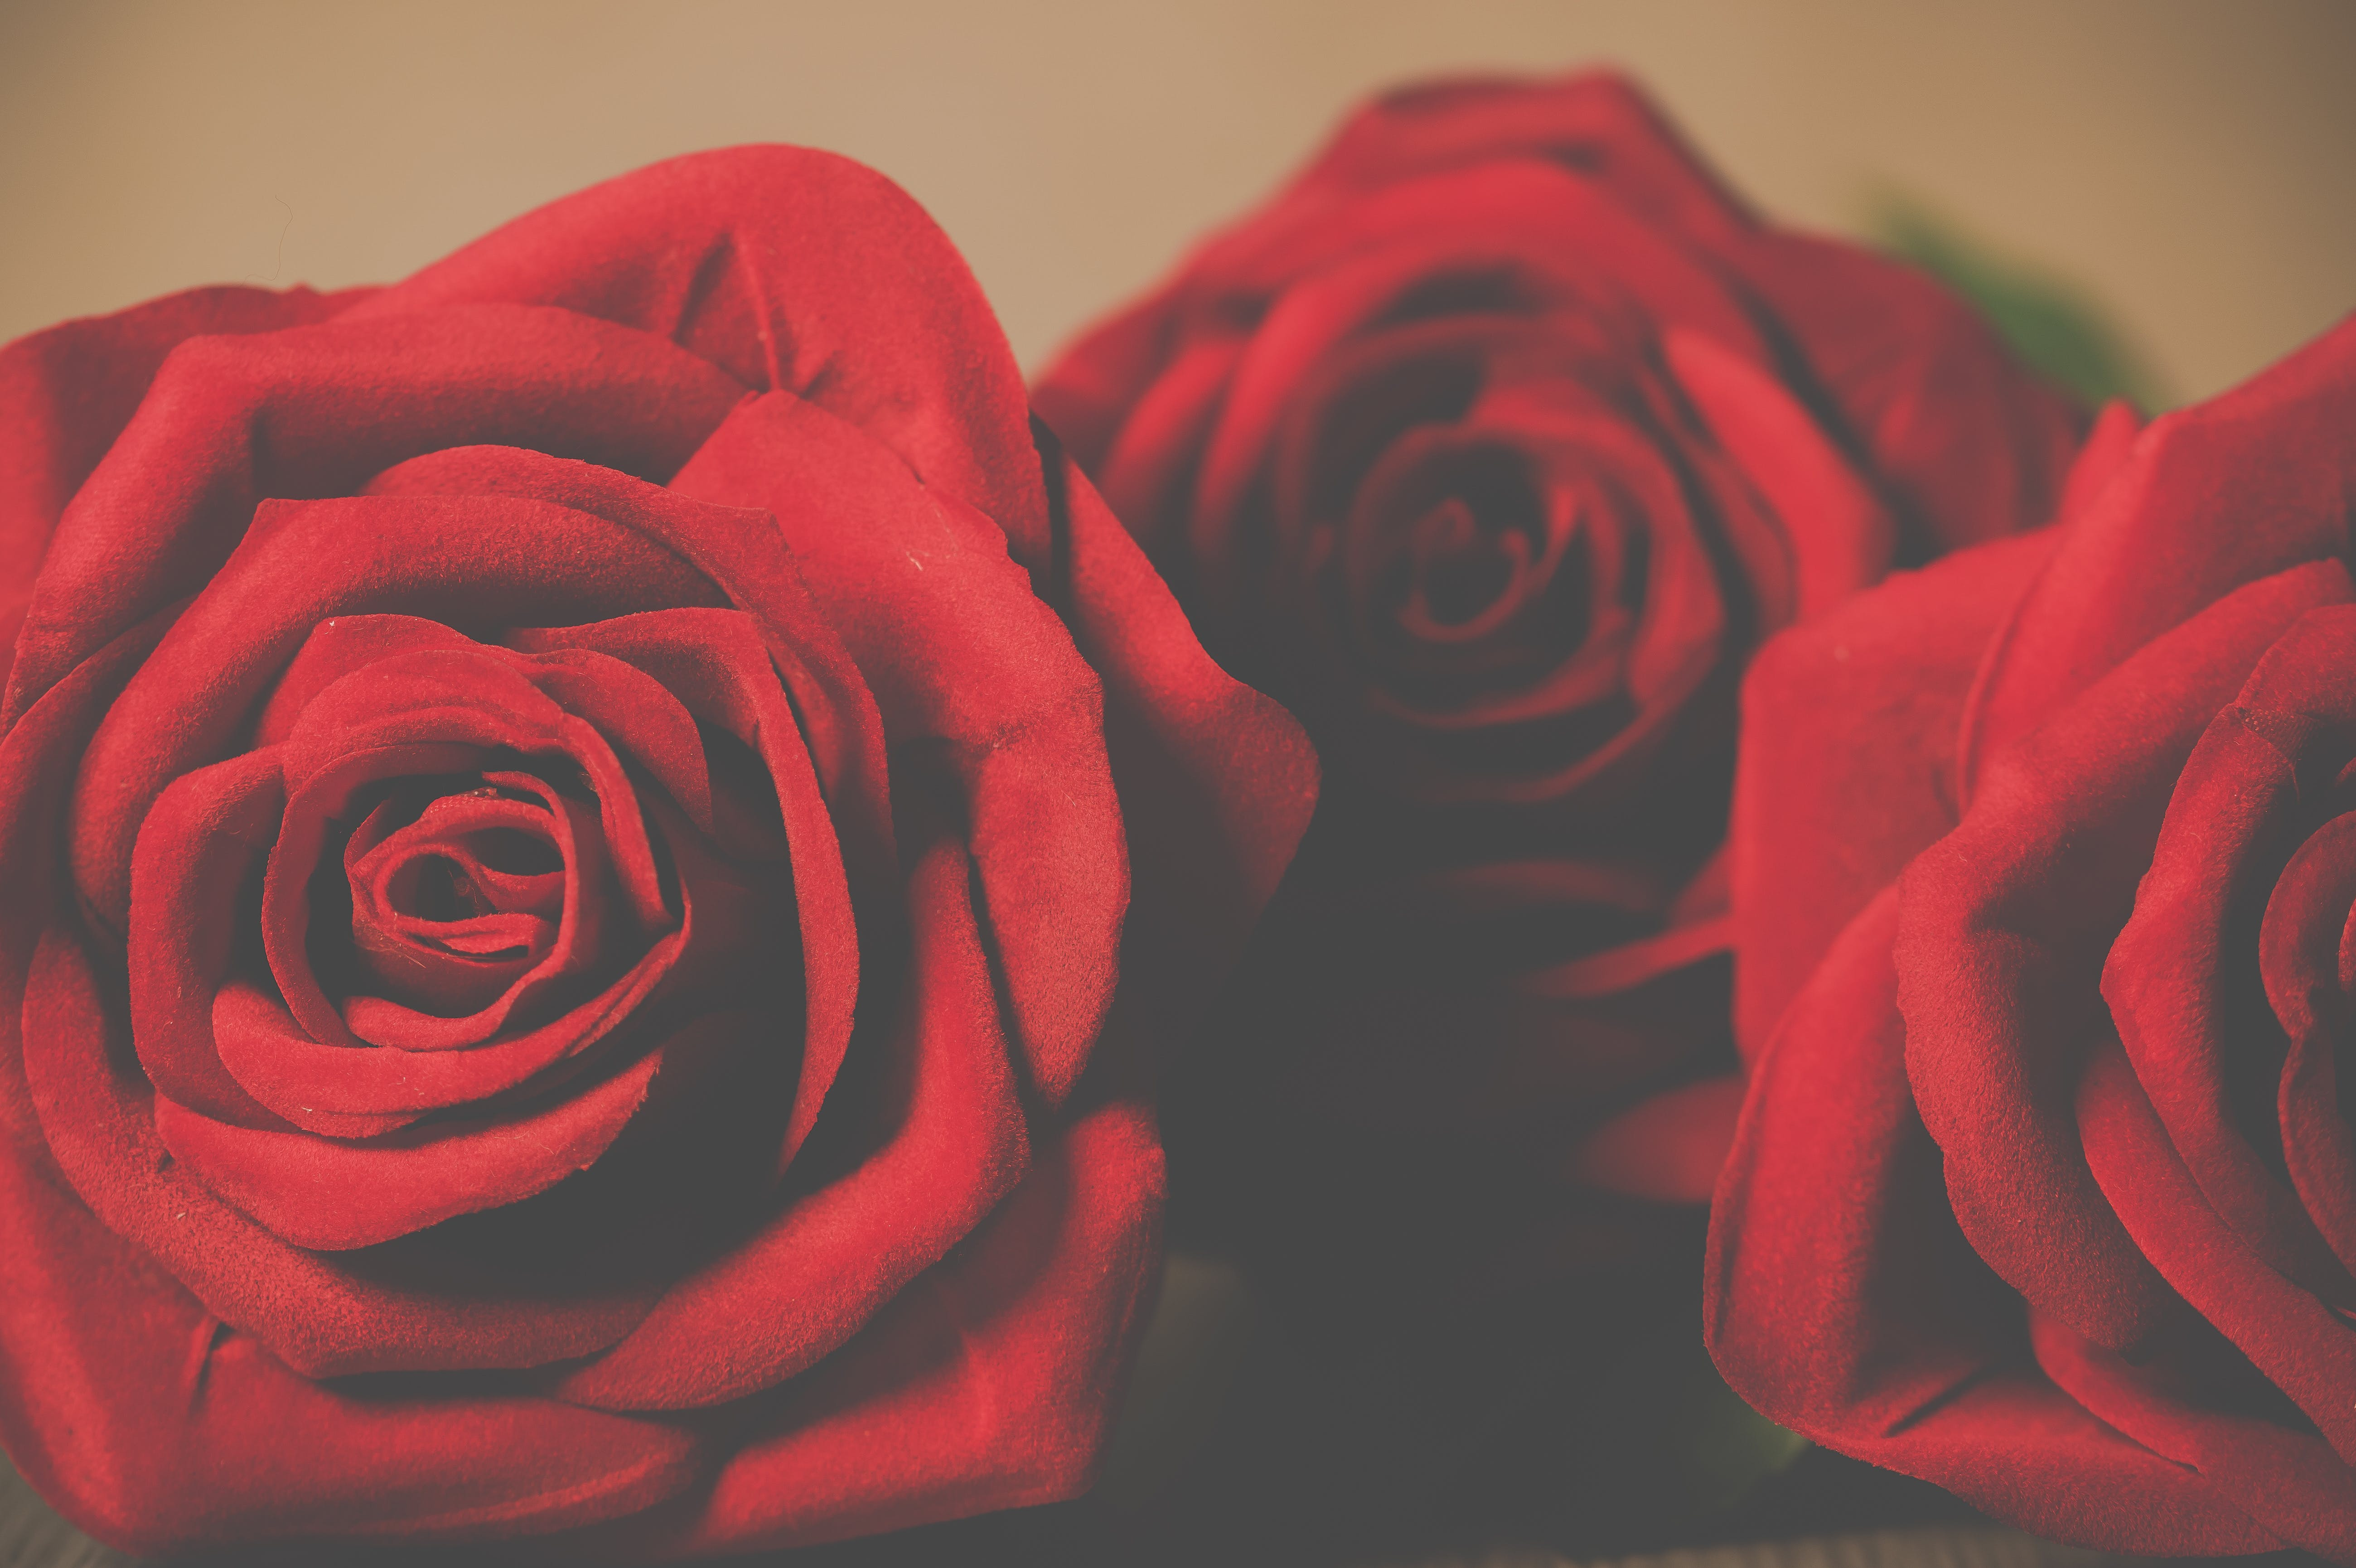 Three Red Petaled Rose Flowers